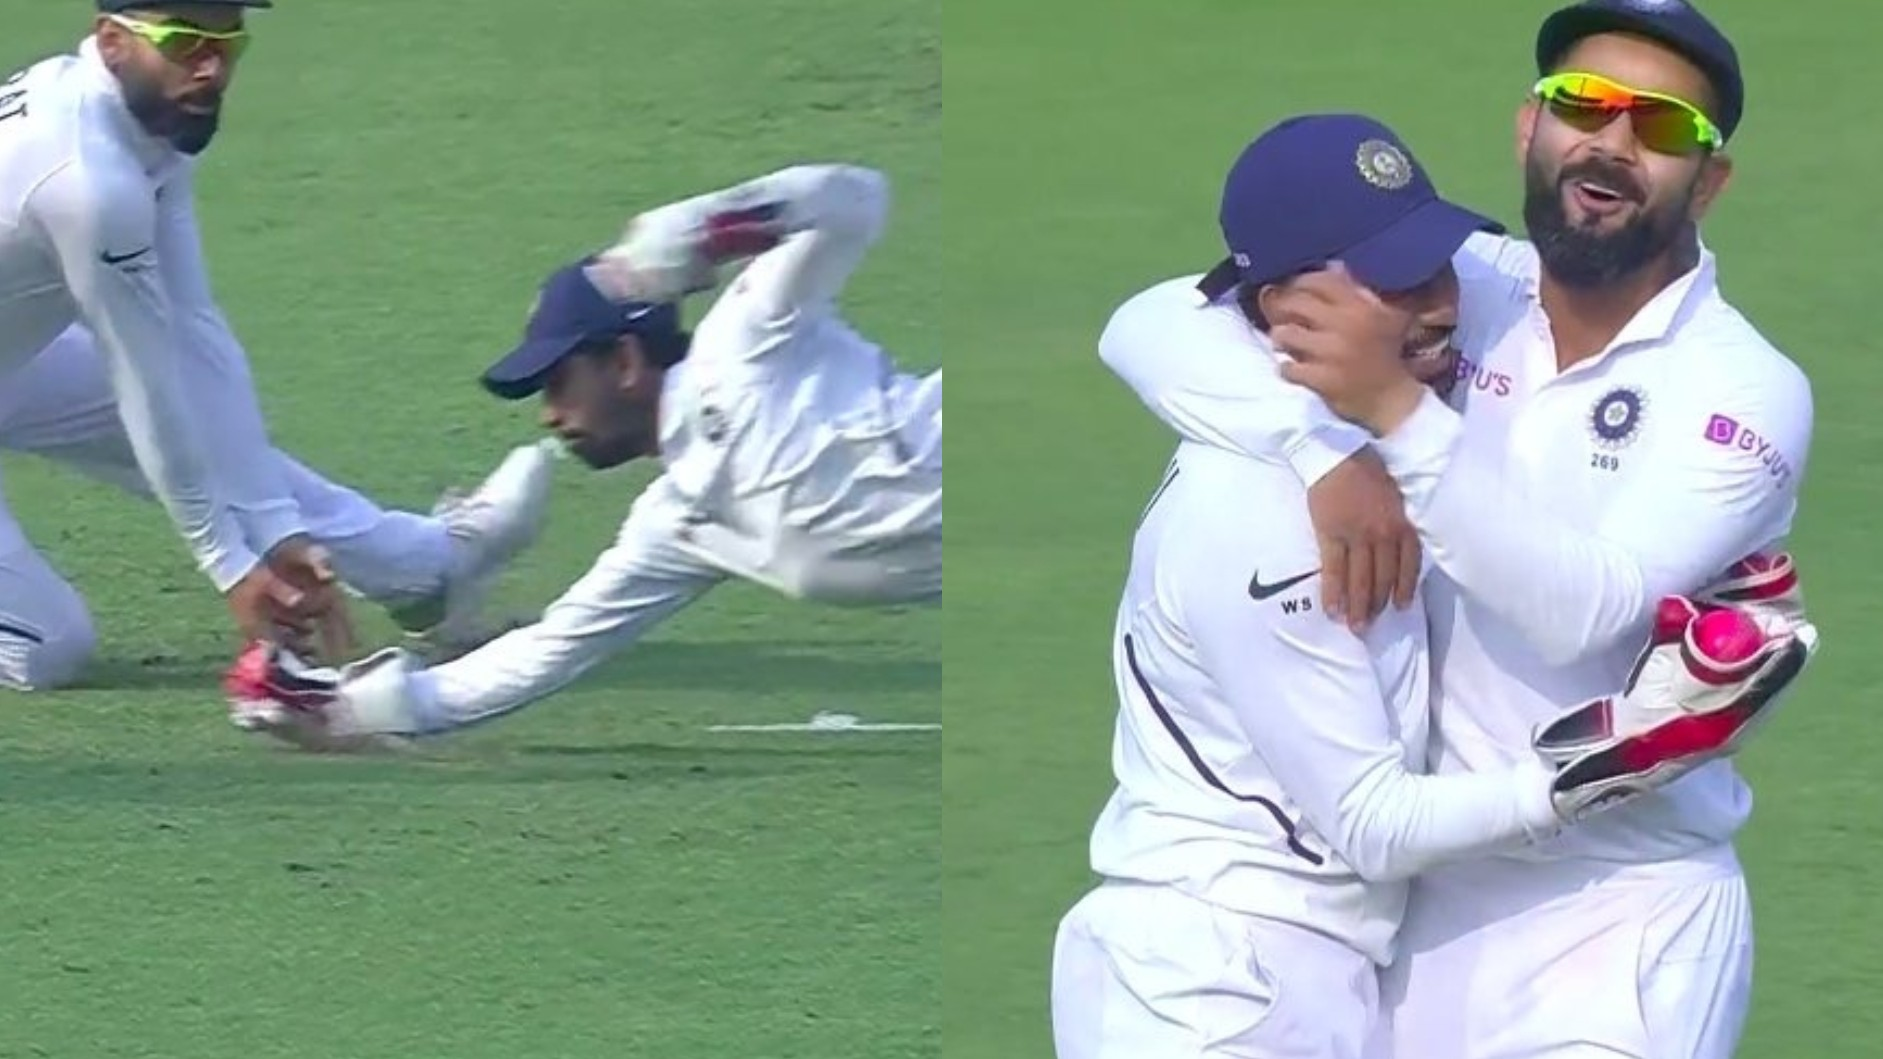 IND v BAN 2019: WATCH- Wriddhiman Saha plucks one out of thin air to take a one-handed beauty of a catch